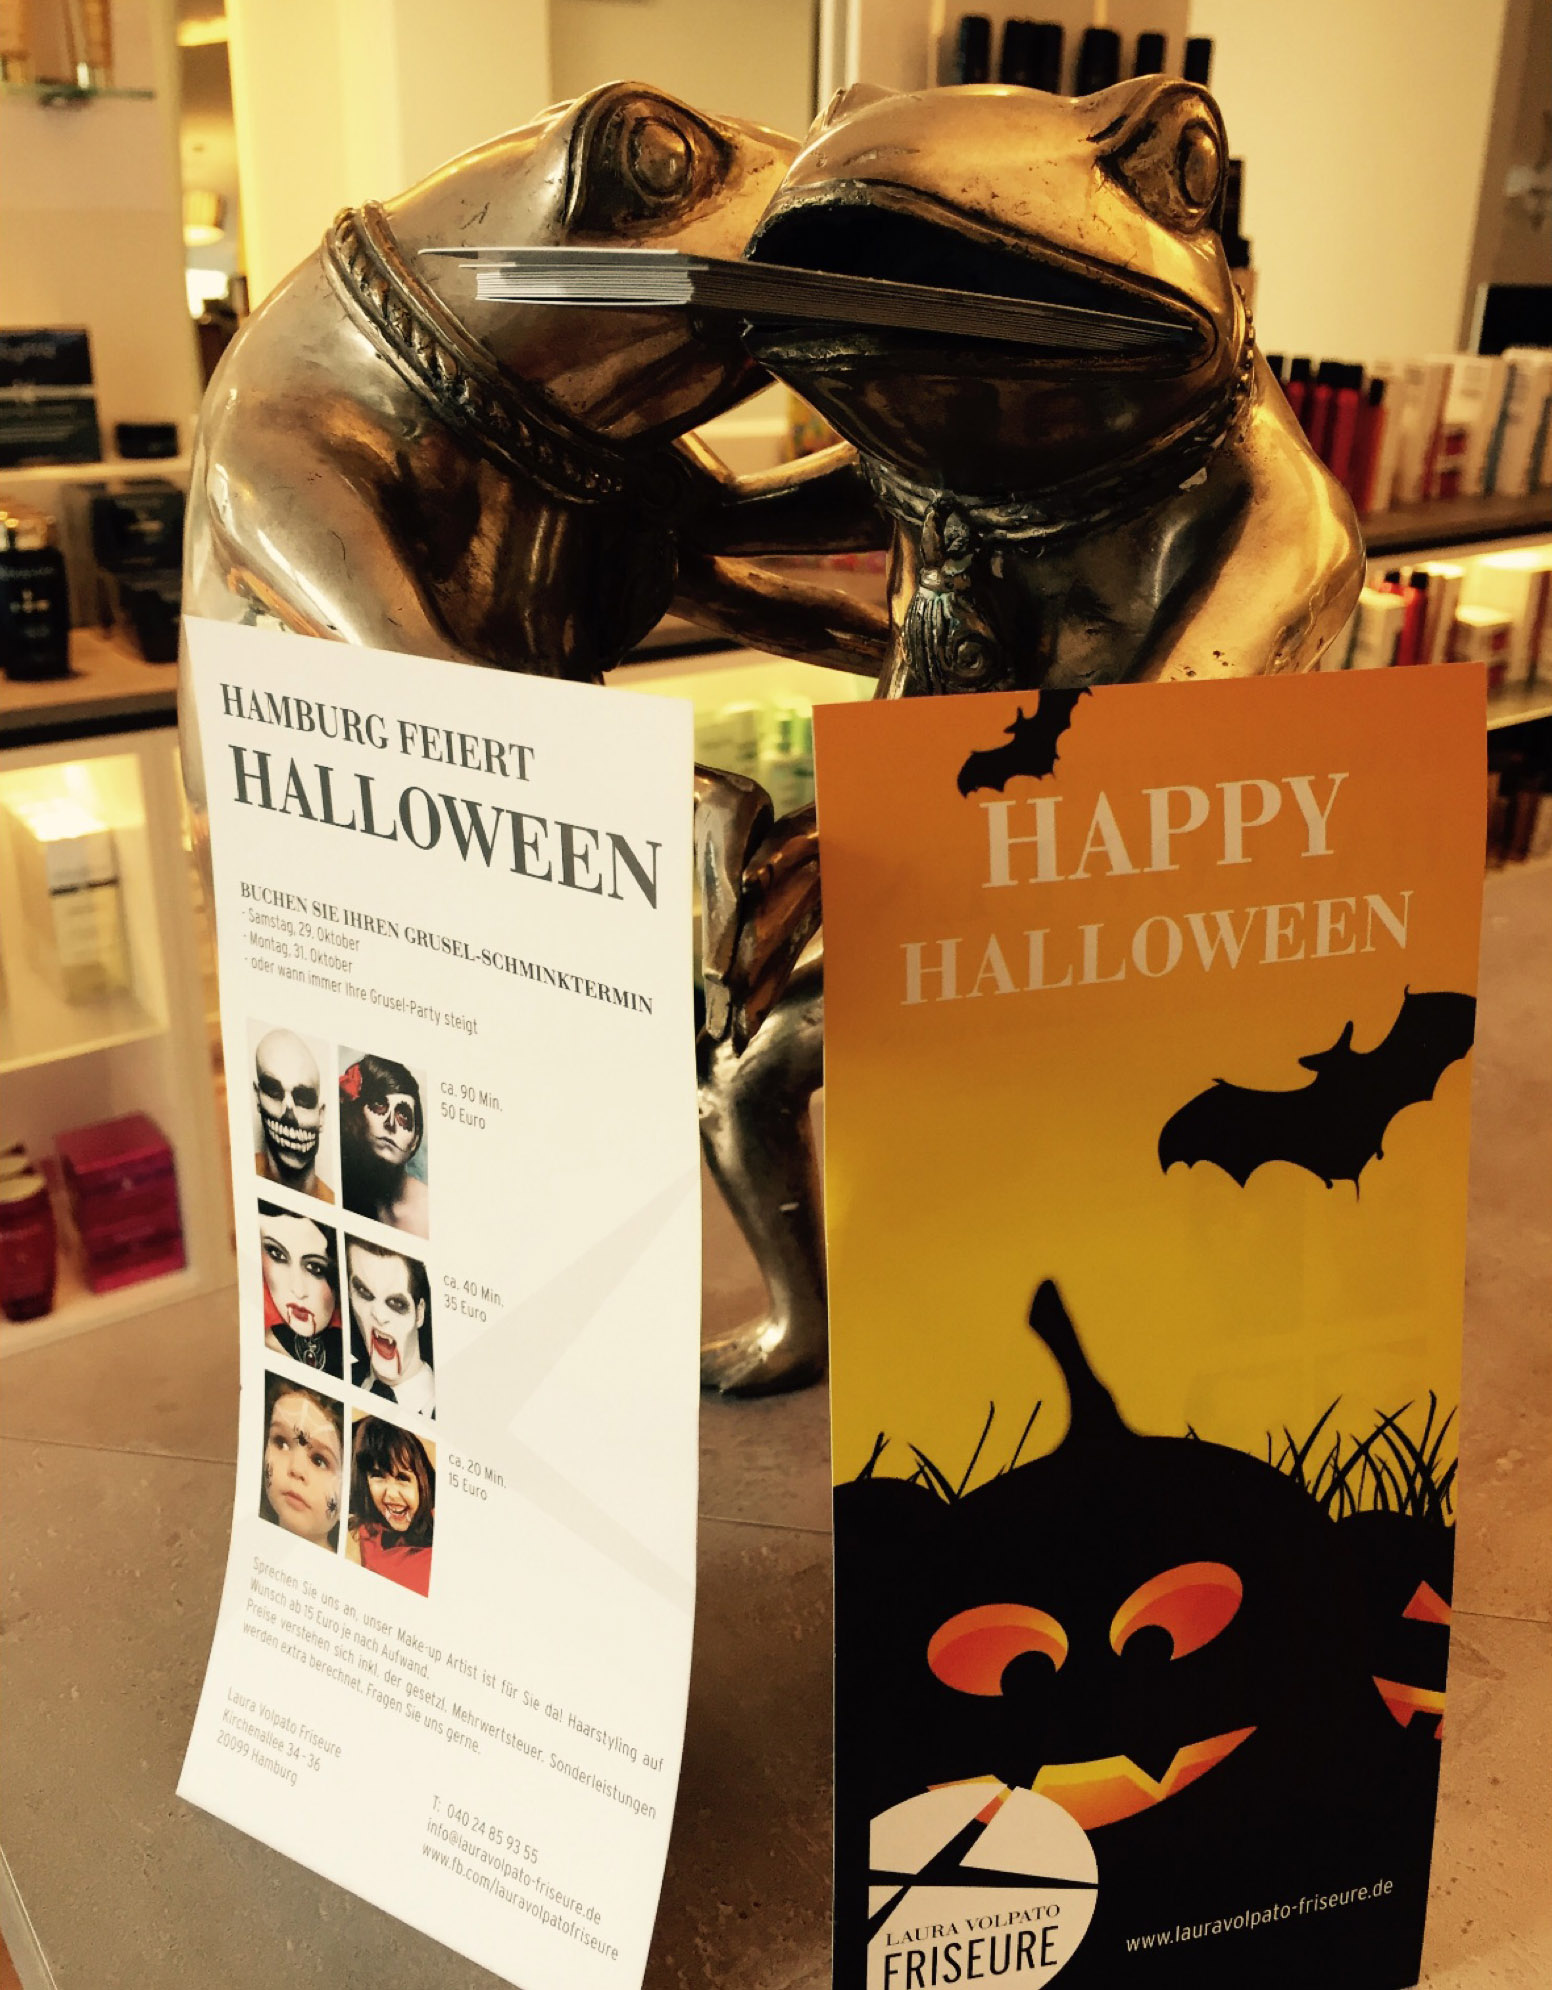 Laura Volpato Friseure - Halloween-Angebote